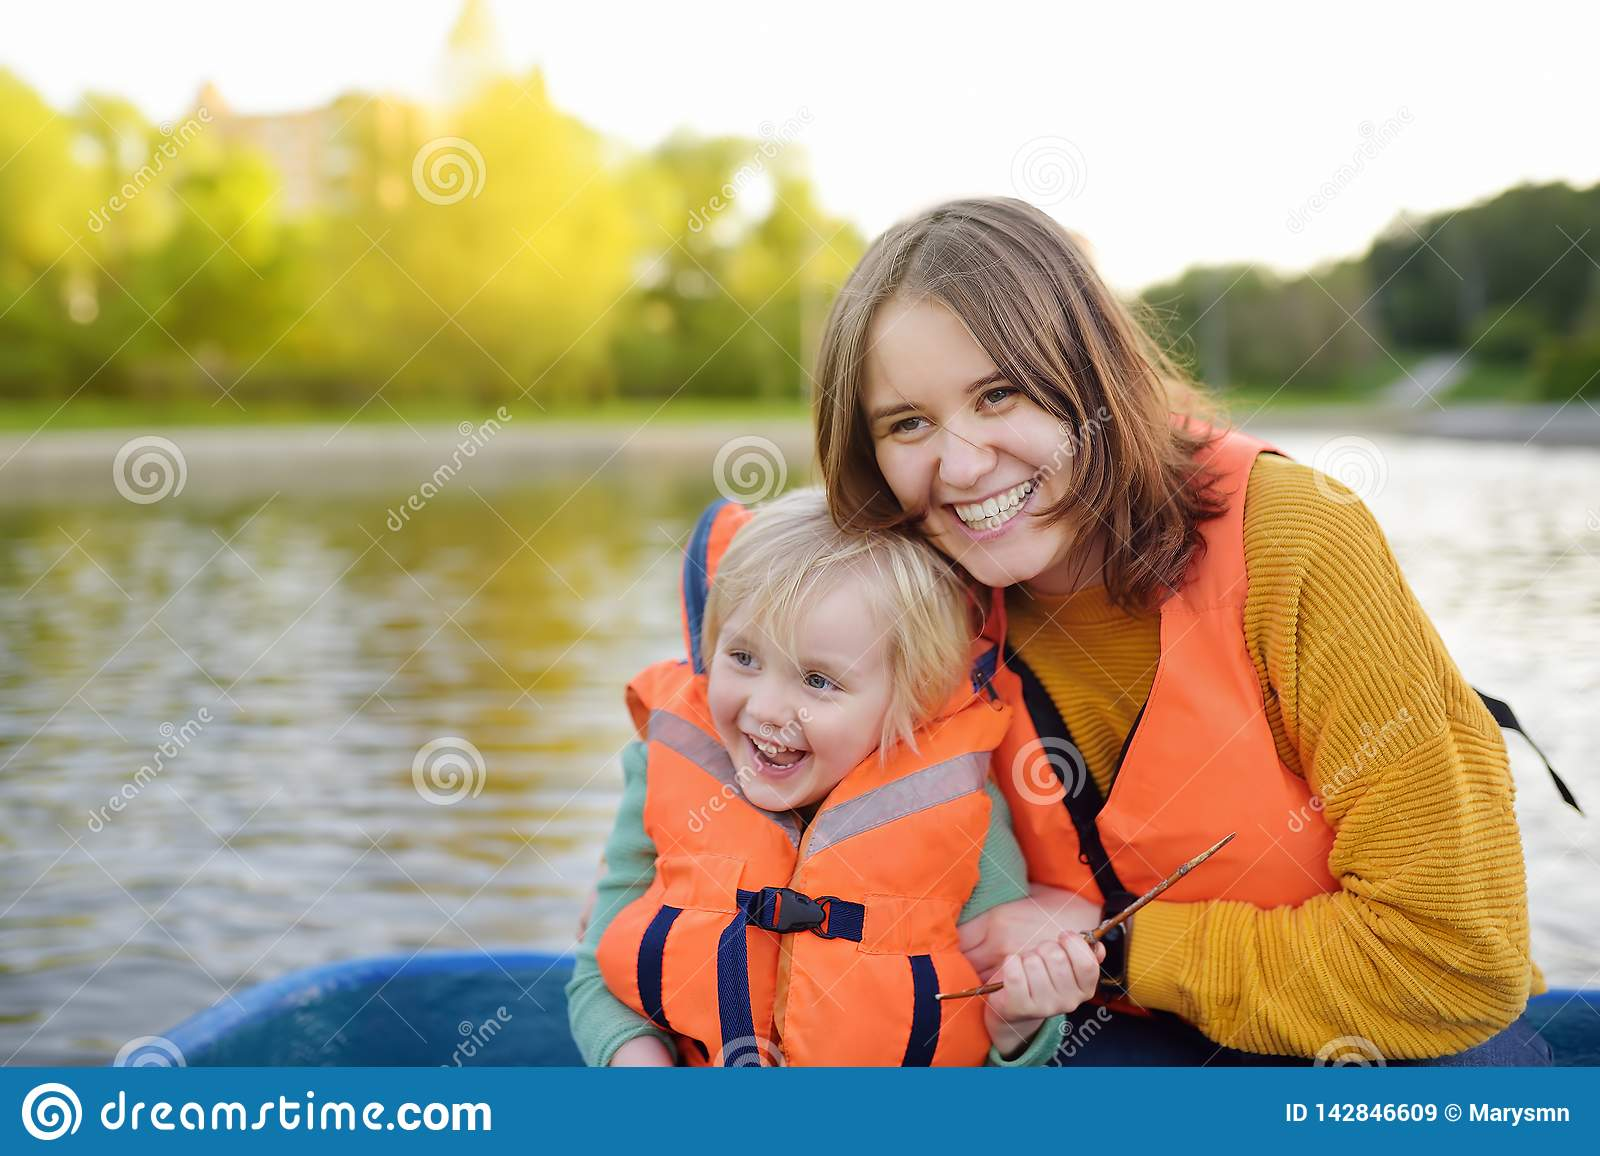 Young mother and little son boating on a river or pond at sunny summer day. Quality family time together on nature